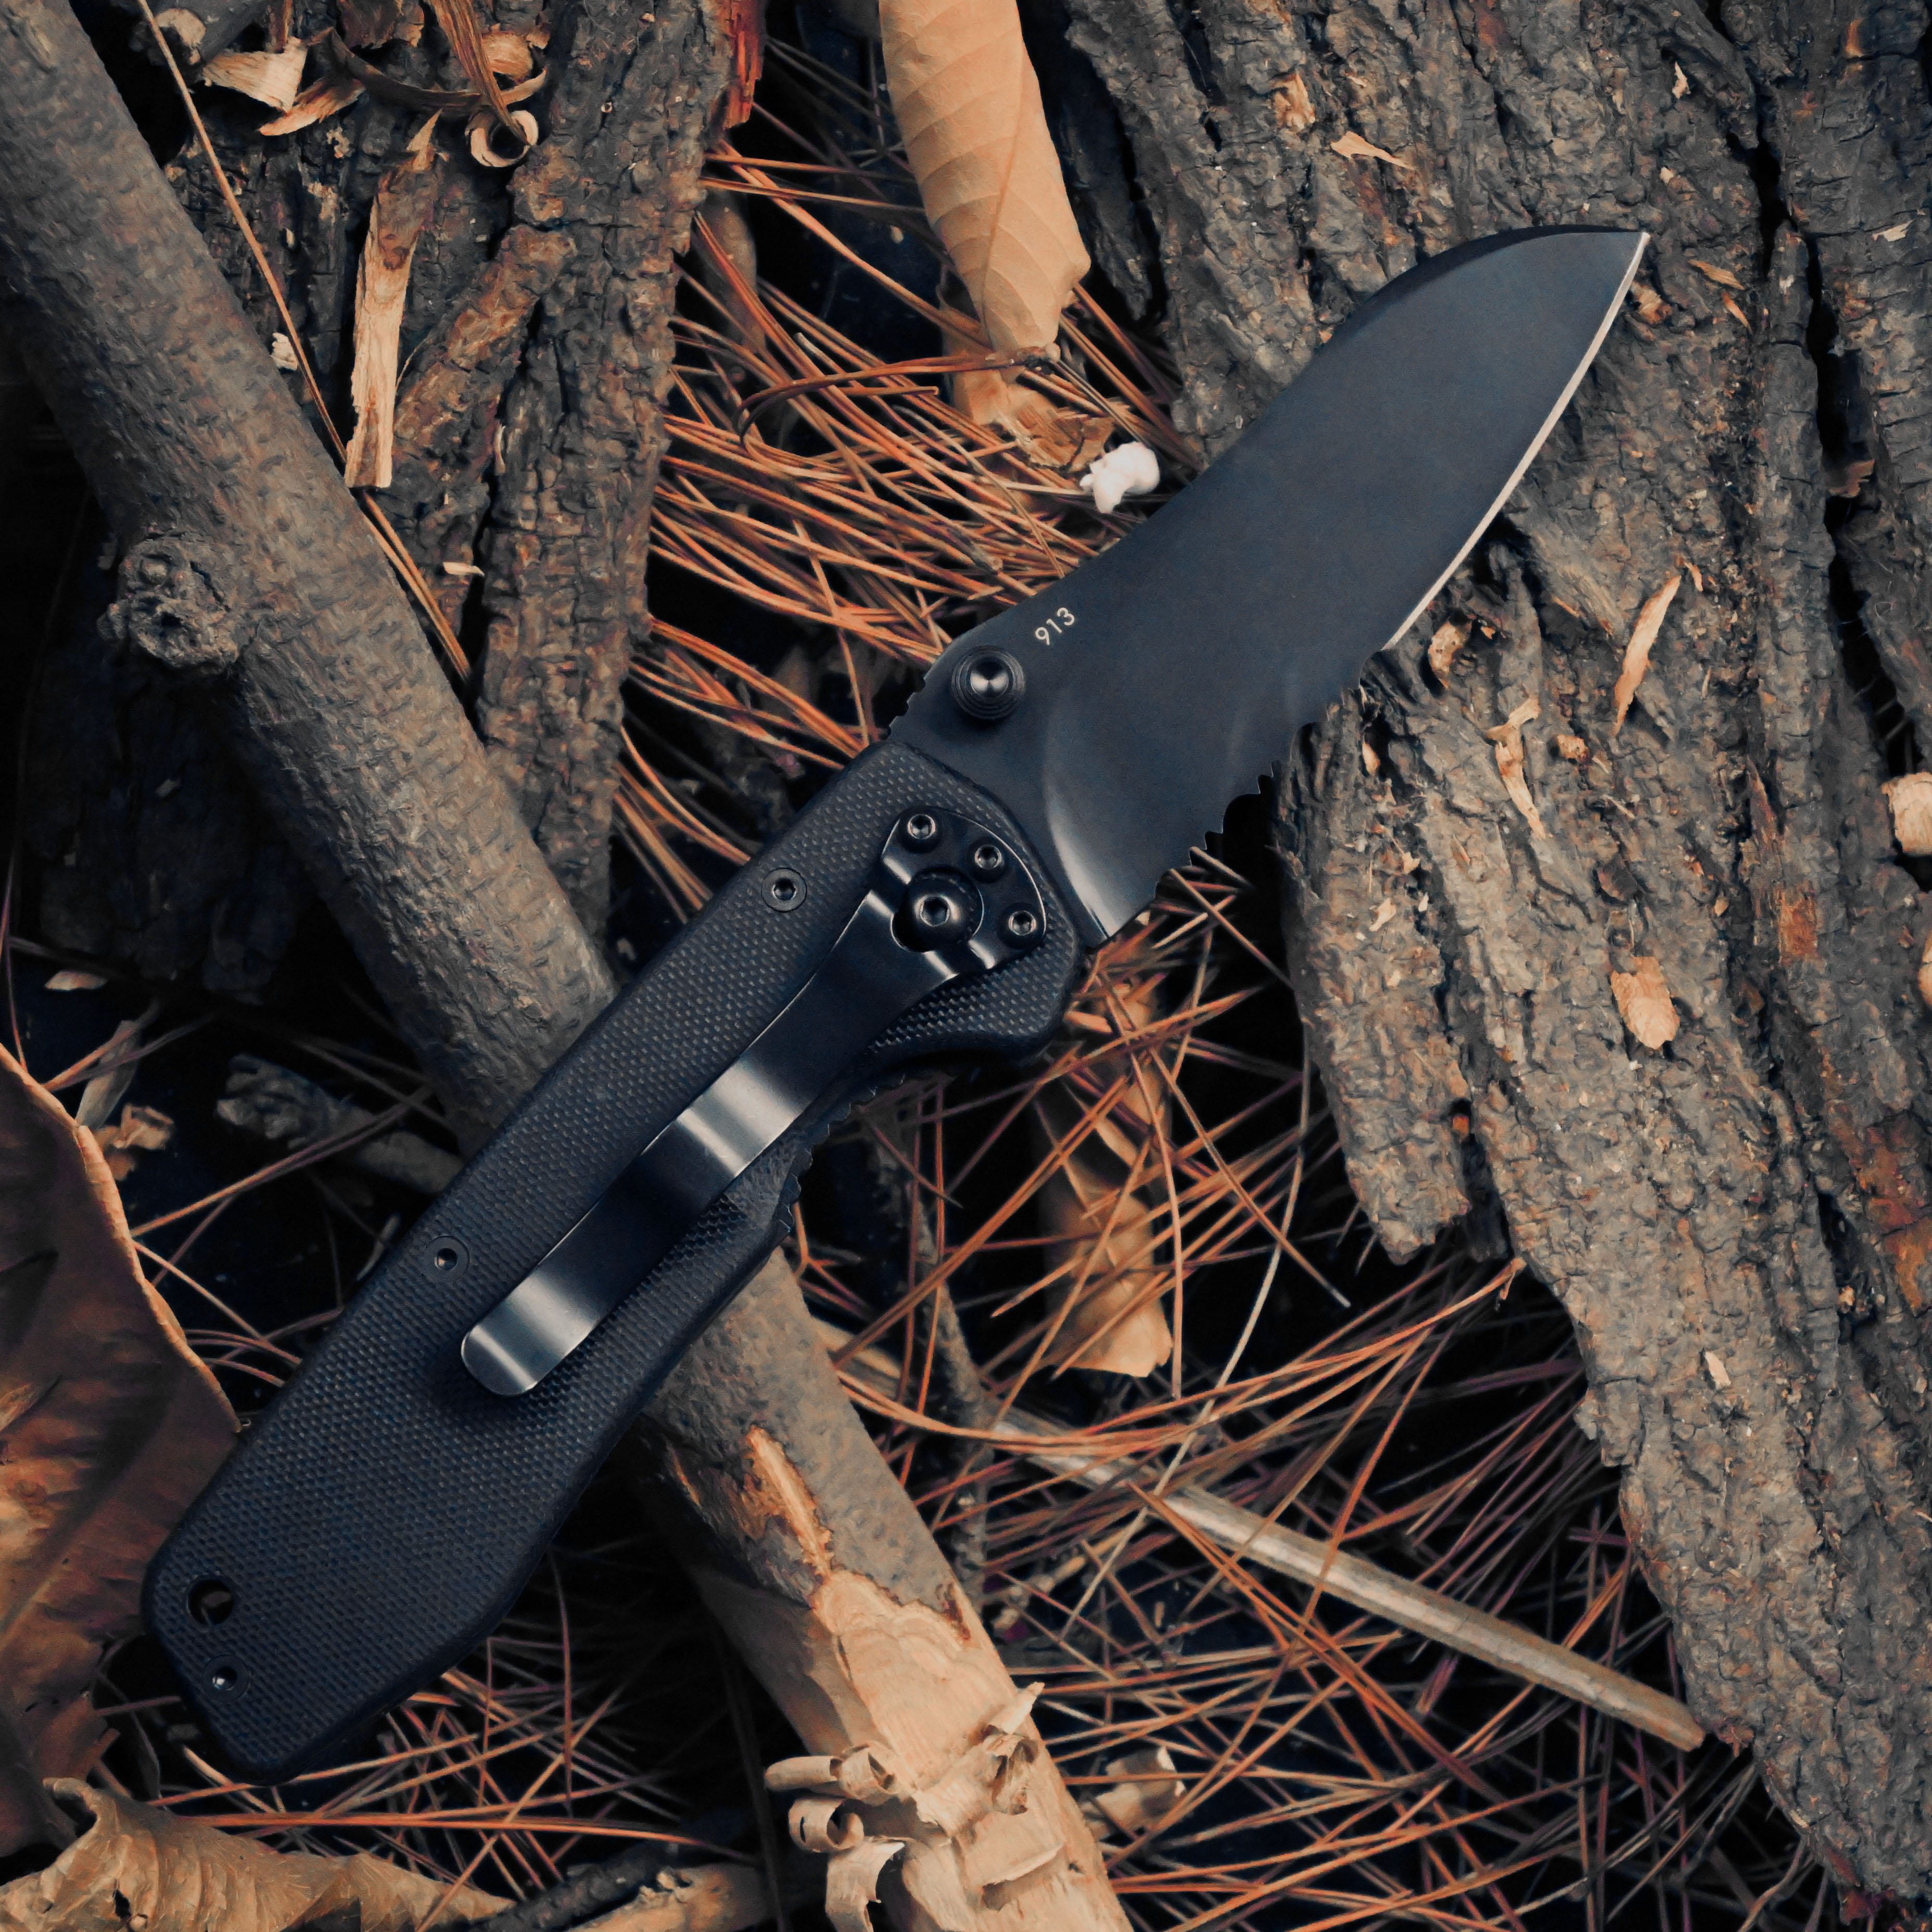 Knife Military Land Blade Outdoor 8C14 913P Camping Handle Tactical MultiTool Survival G10 Utility Folding New